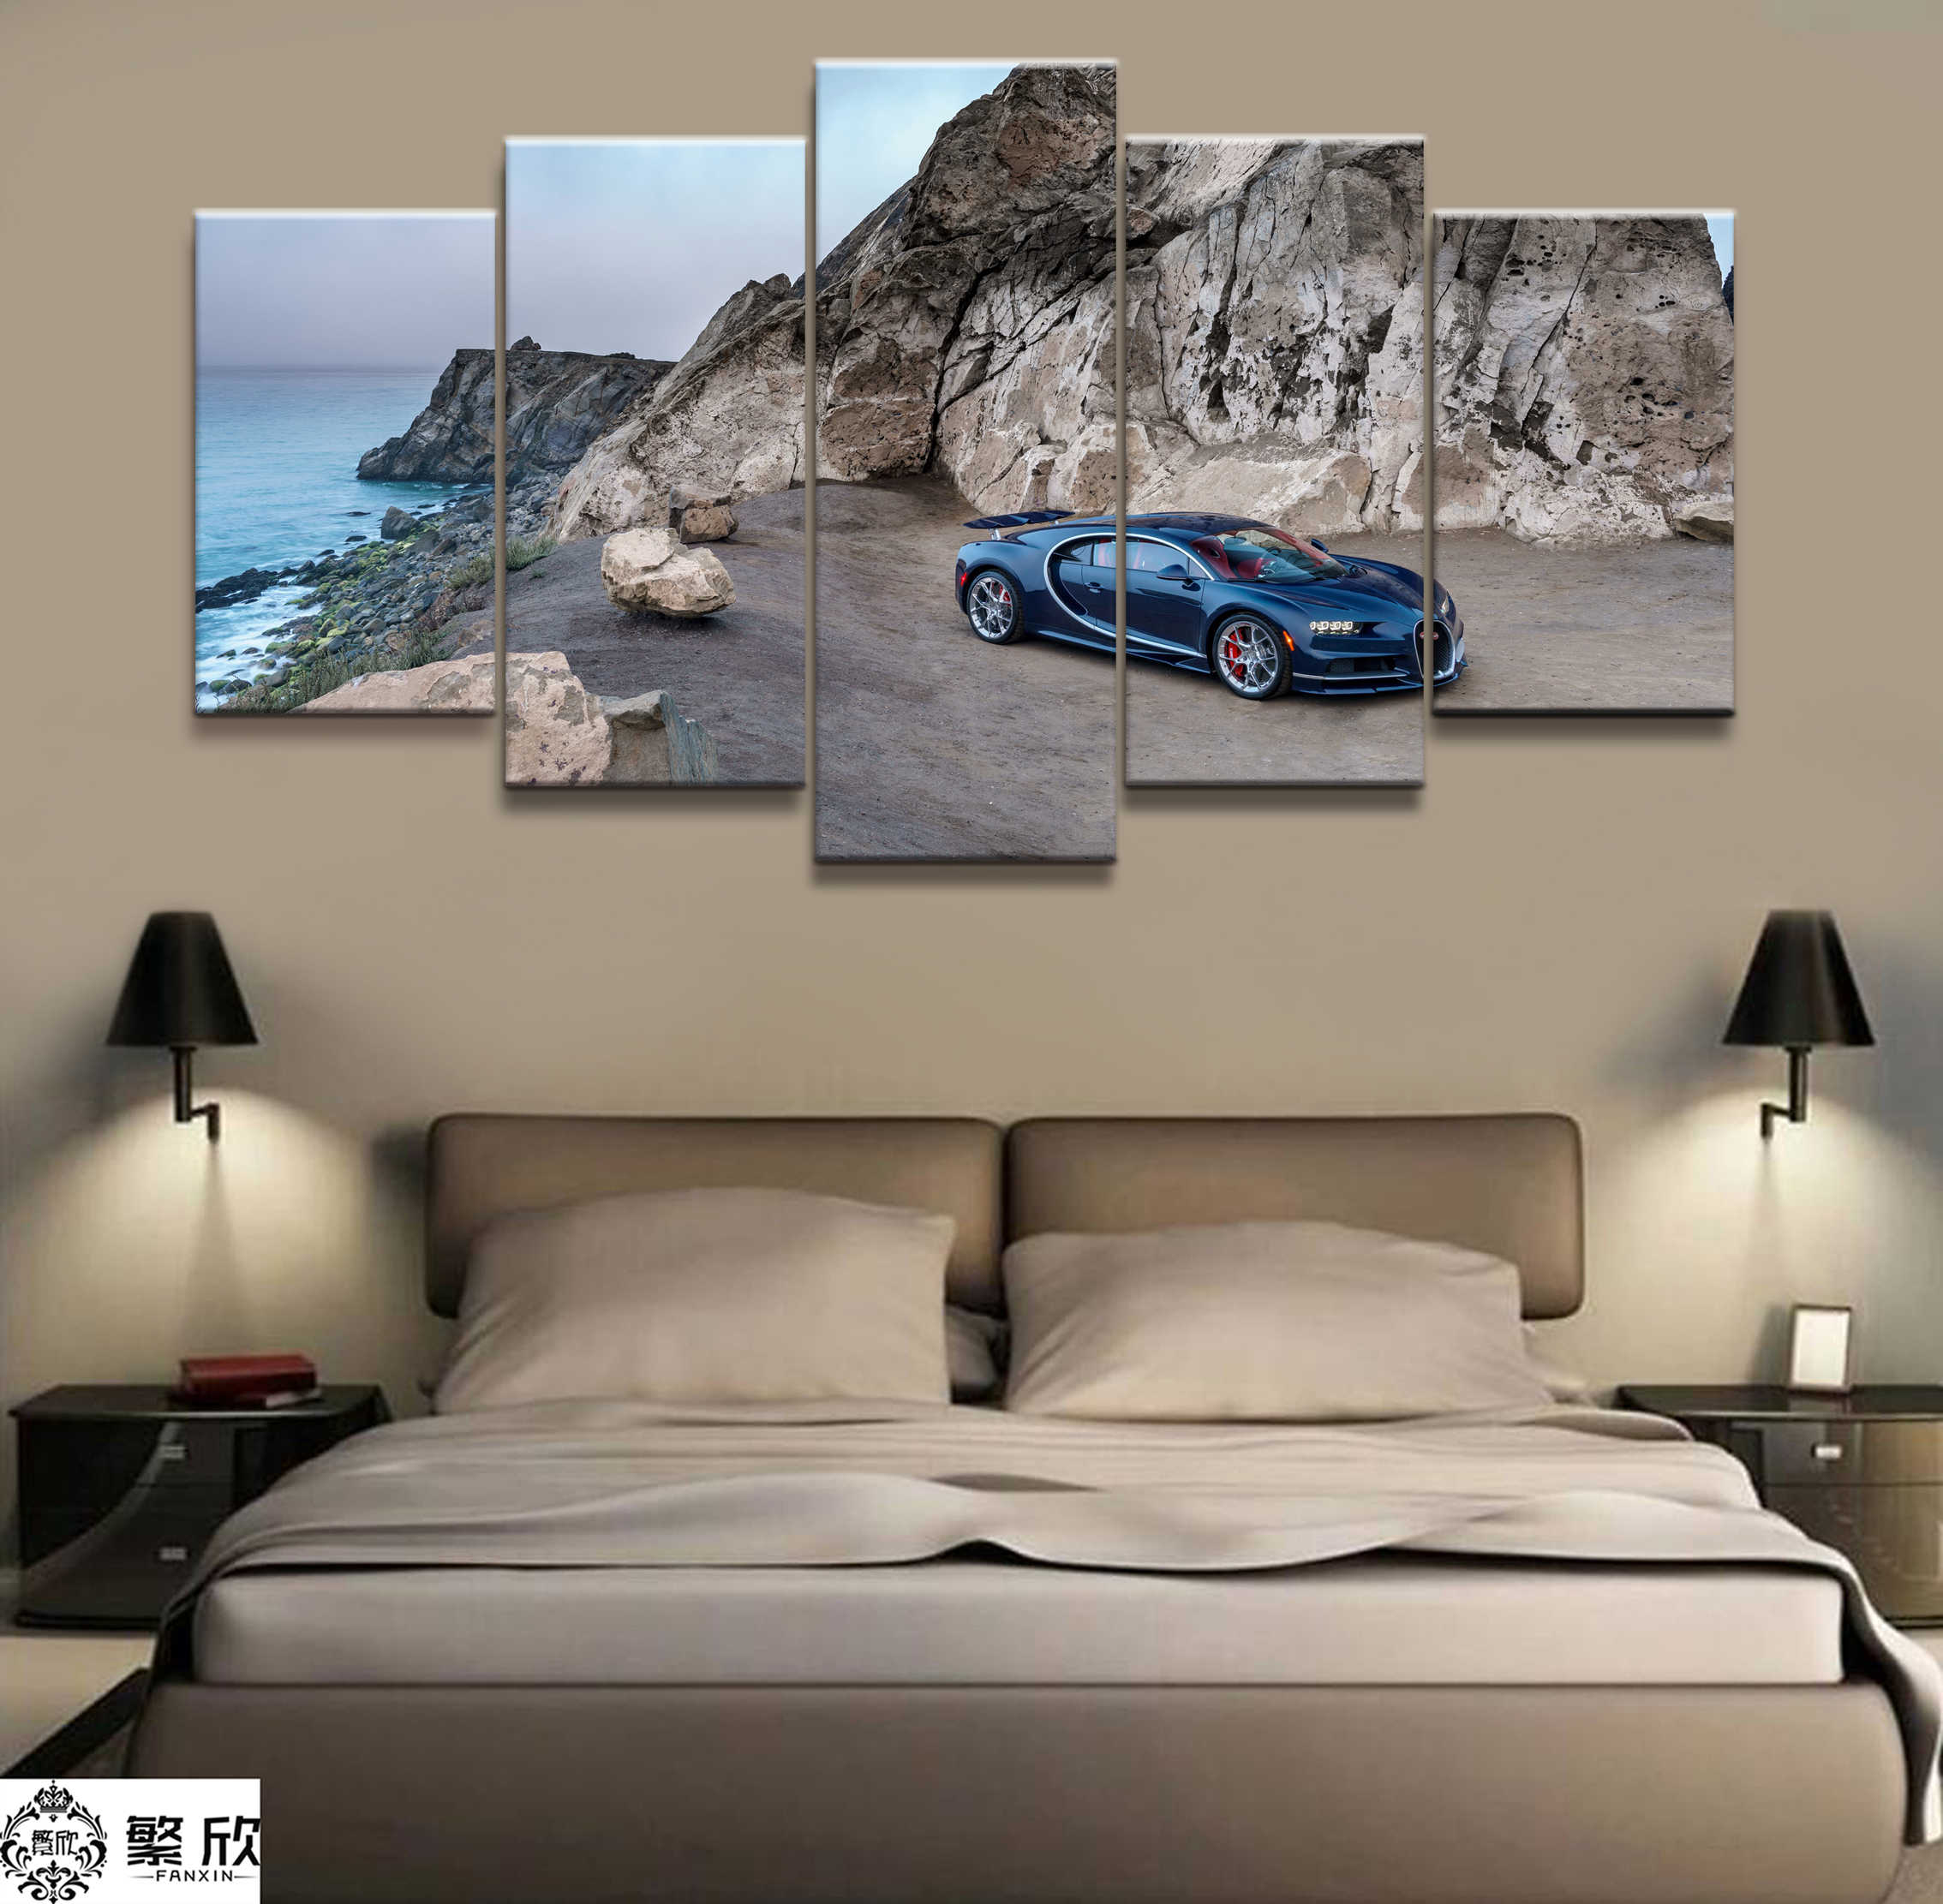 Wall Art Poster Painting Modular Pictures For Living Room Decorative Pictures Canvas Printed 5 Panel Super Car Chiron Scenery